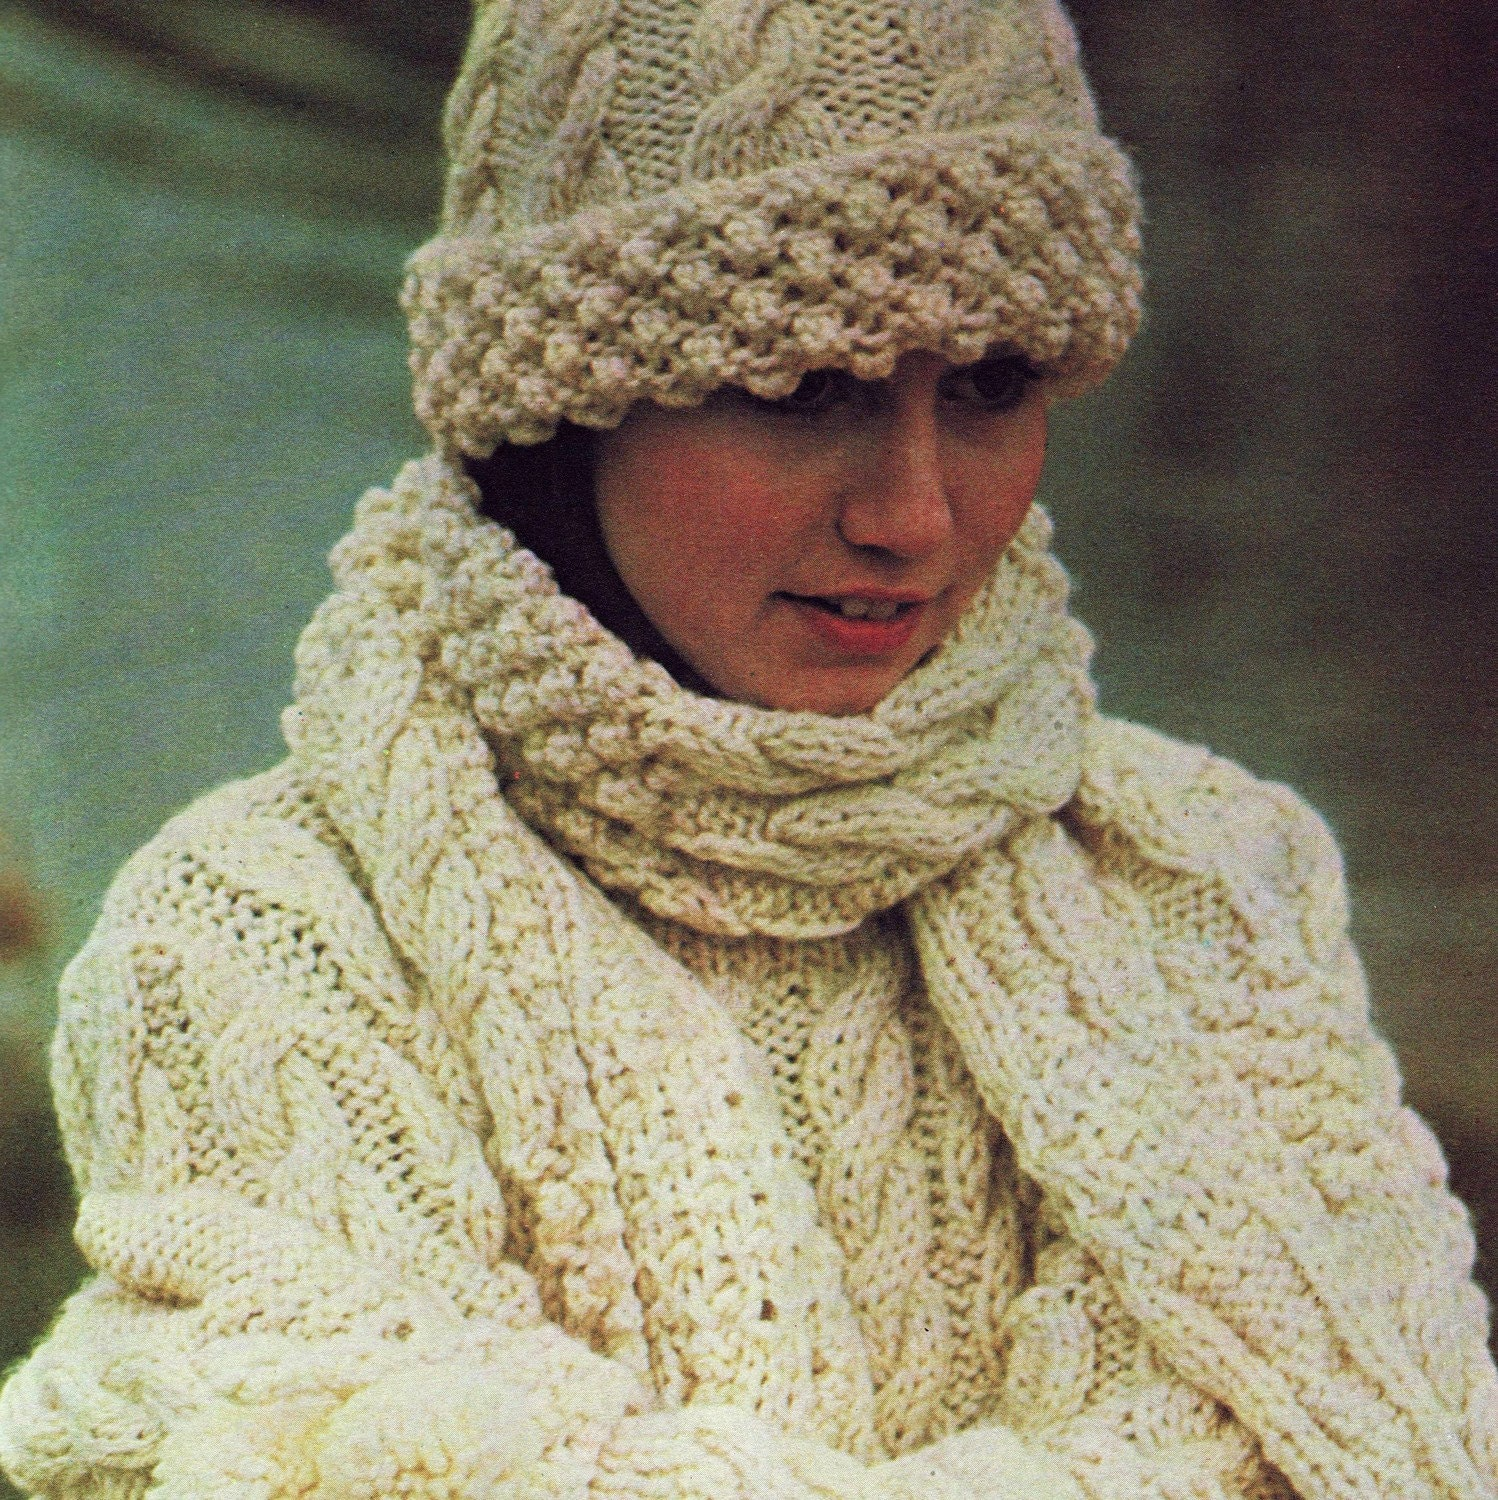 Knitting Pattern Aran Wool : Aran Wool Knitting Patterns Hats - Long Sweater Jacket